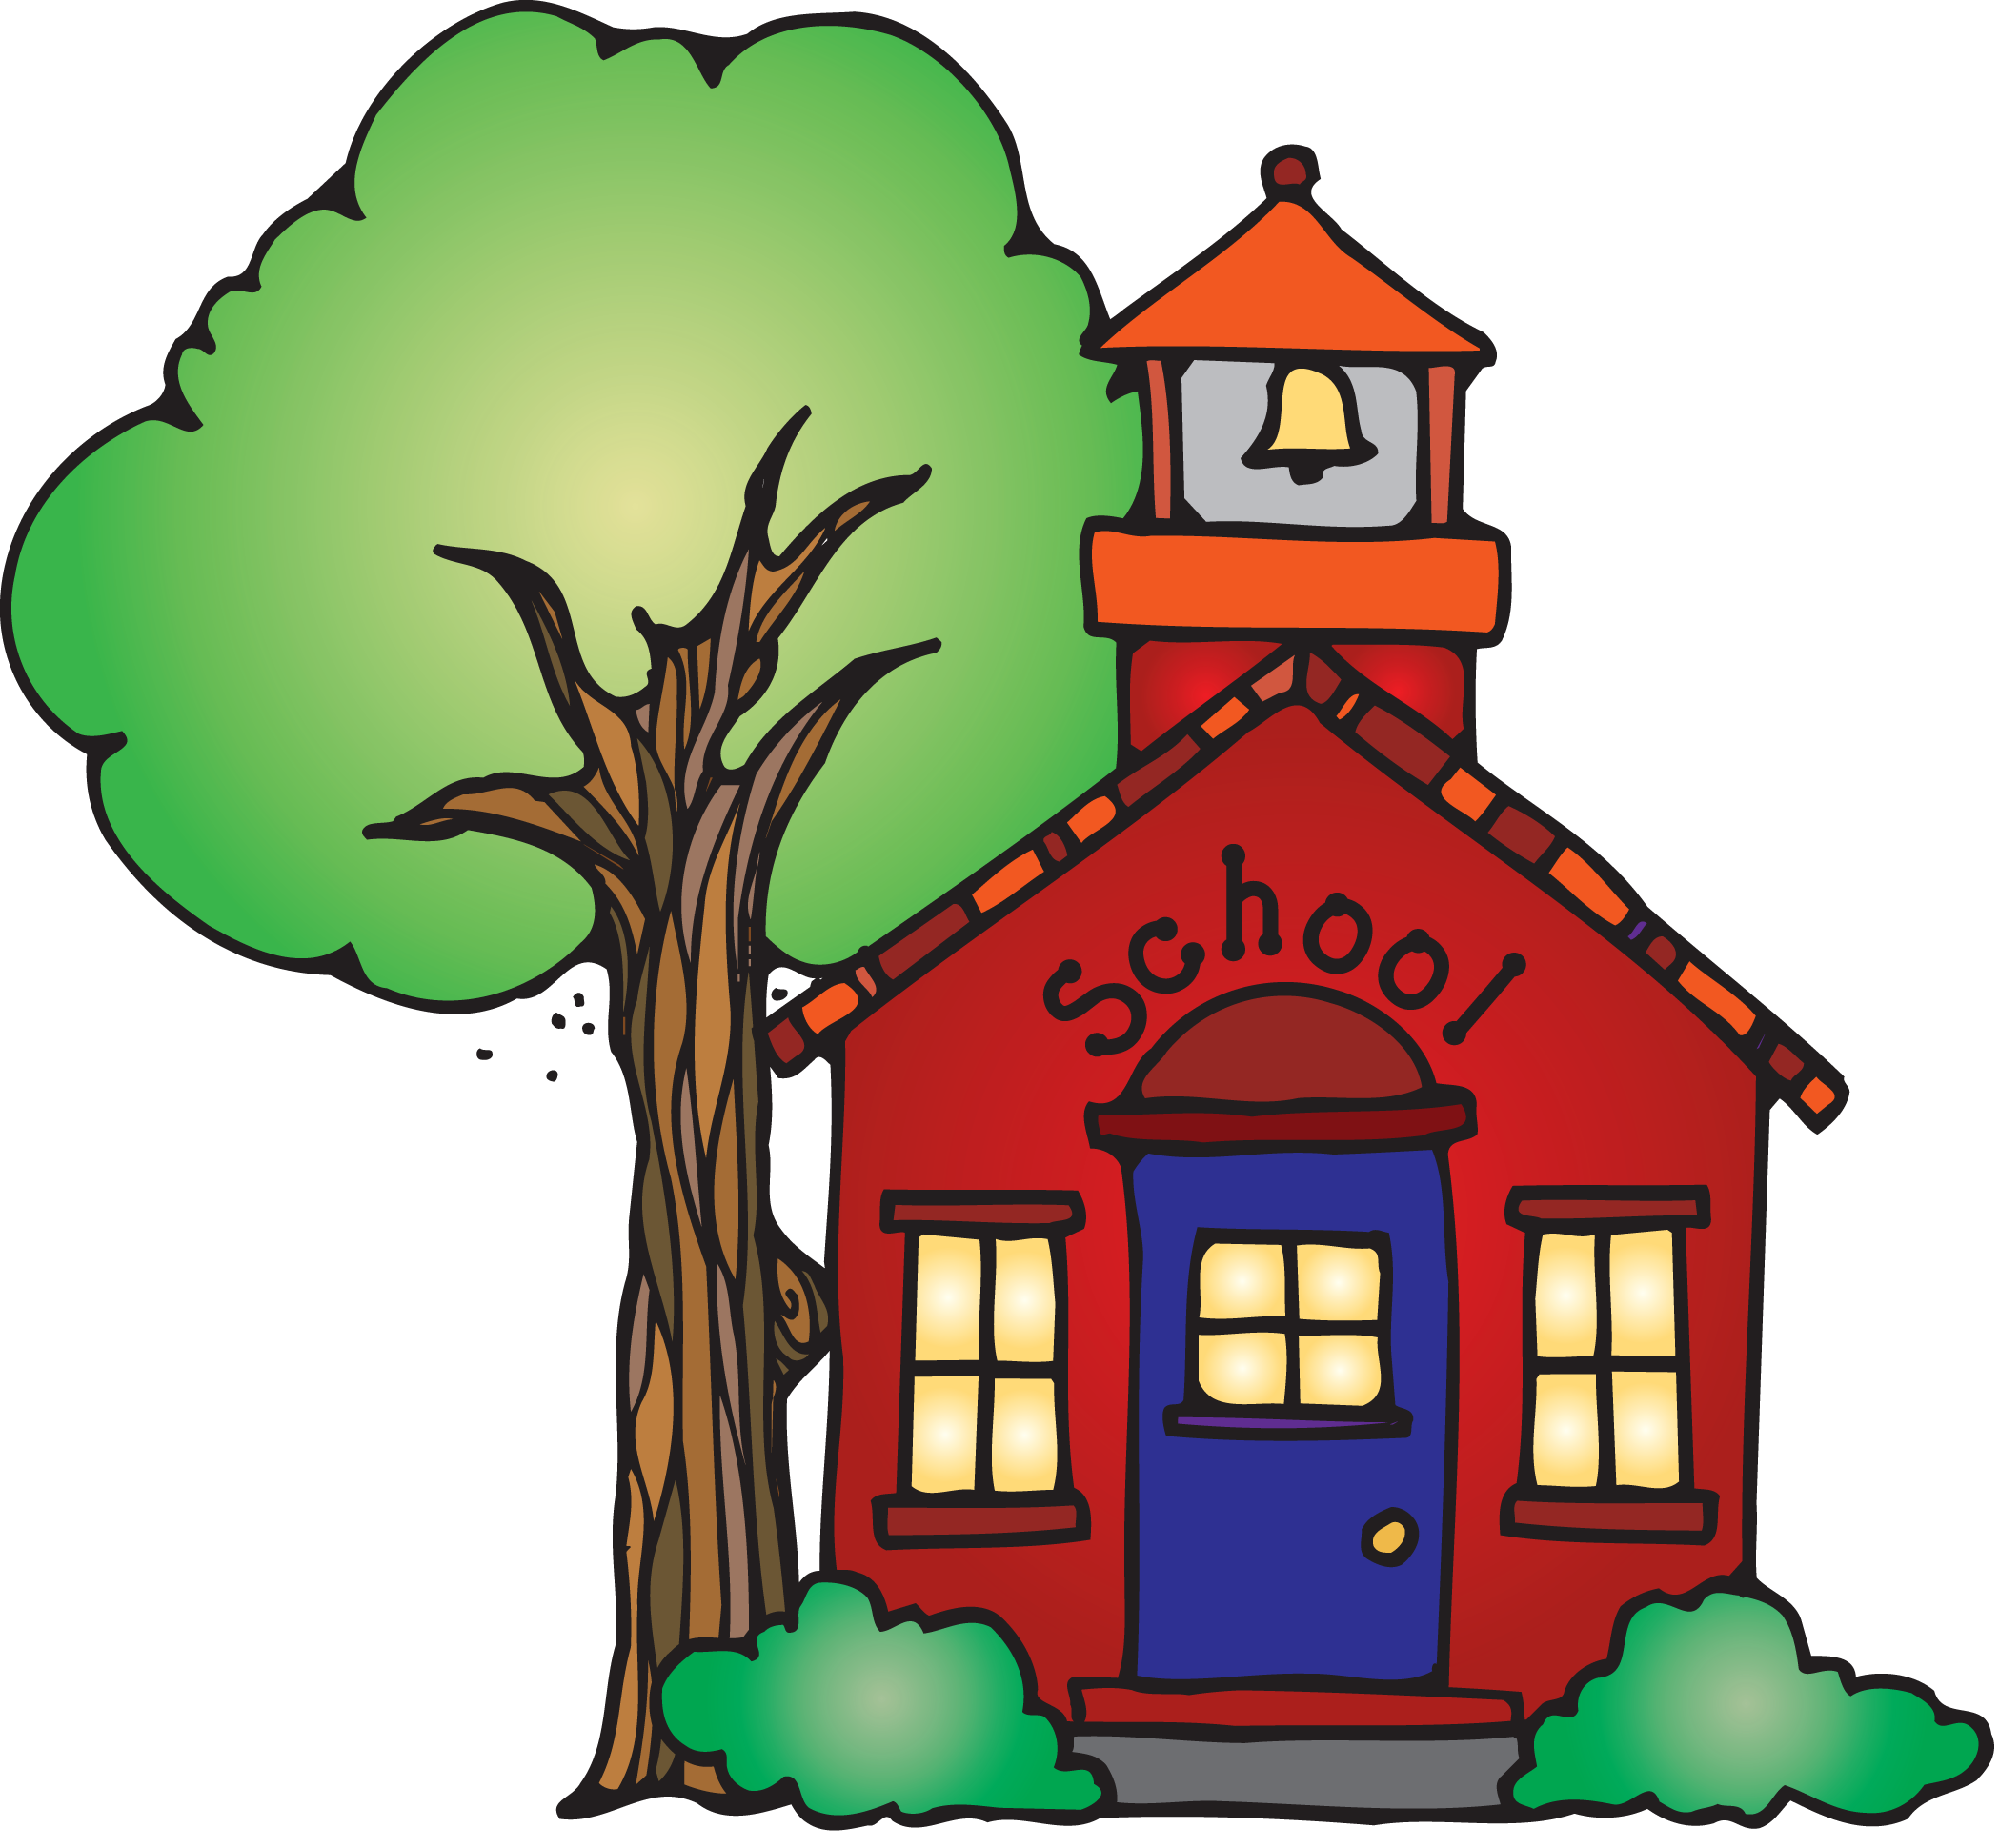 Clipart school spring. No collection elementary background